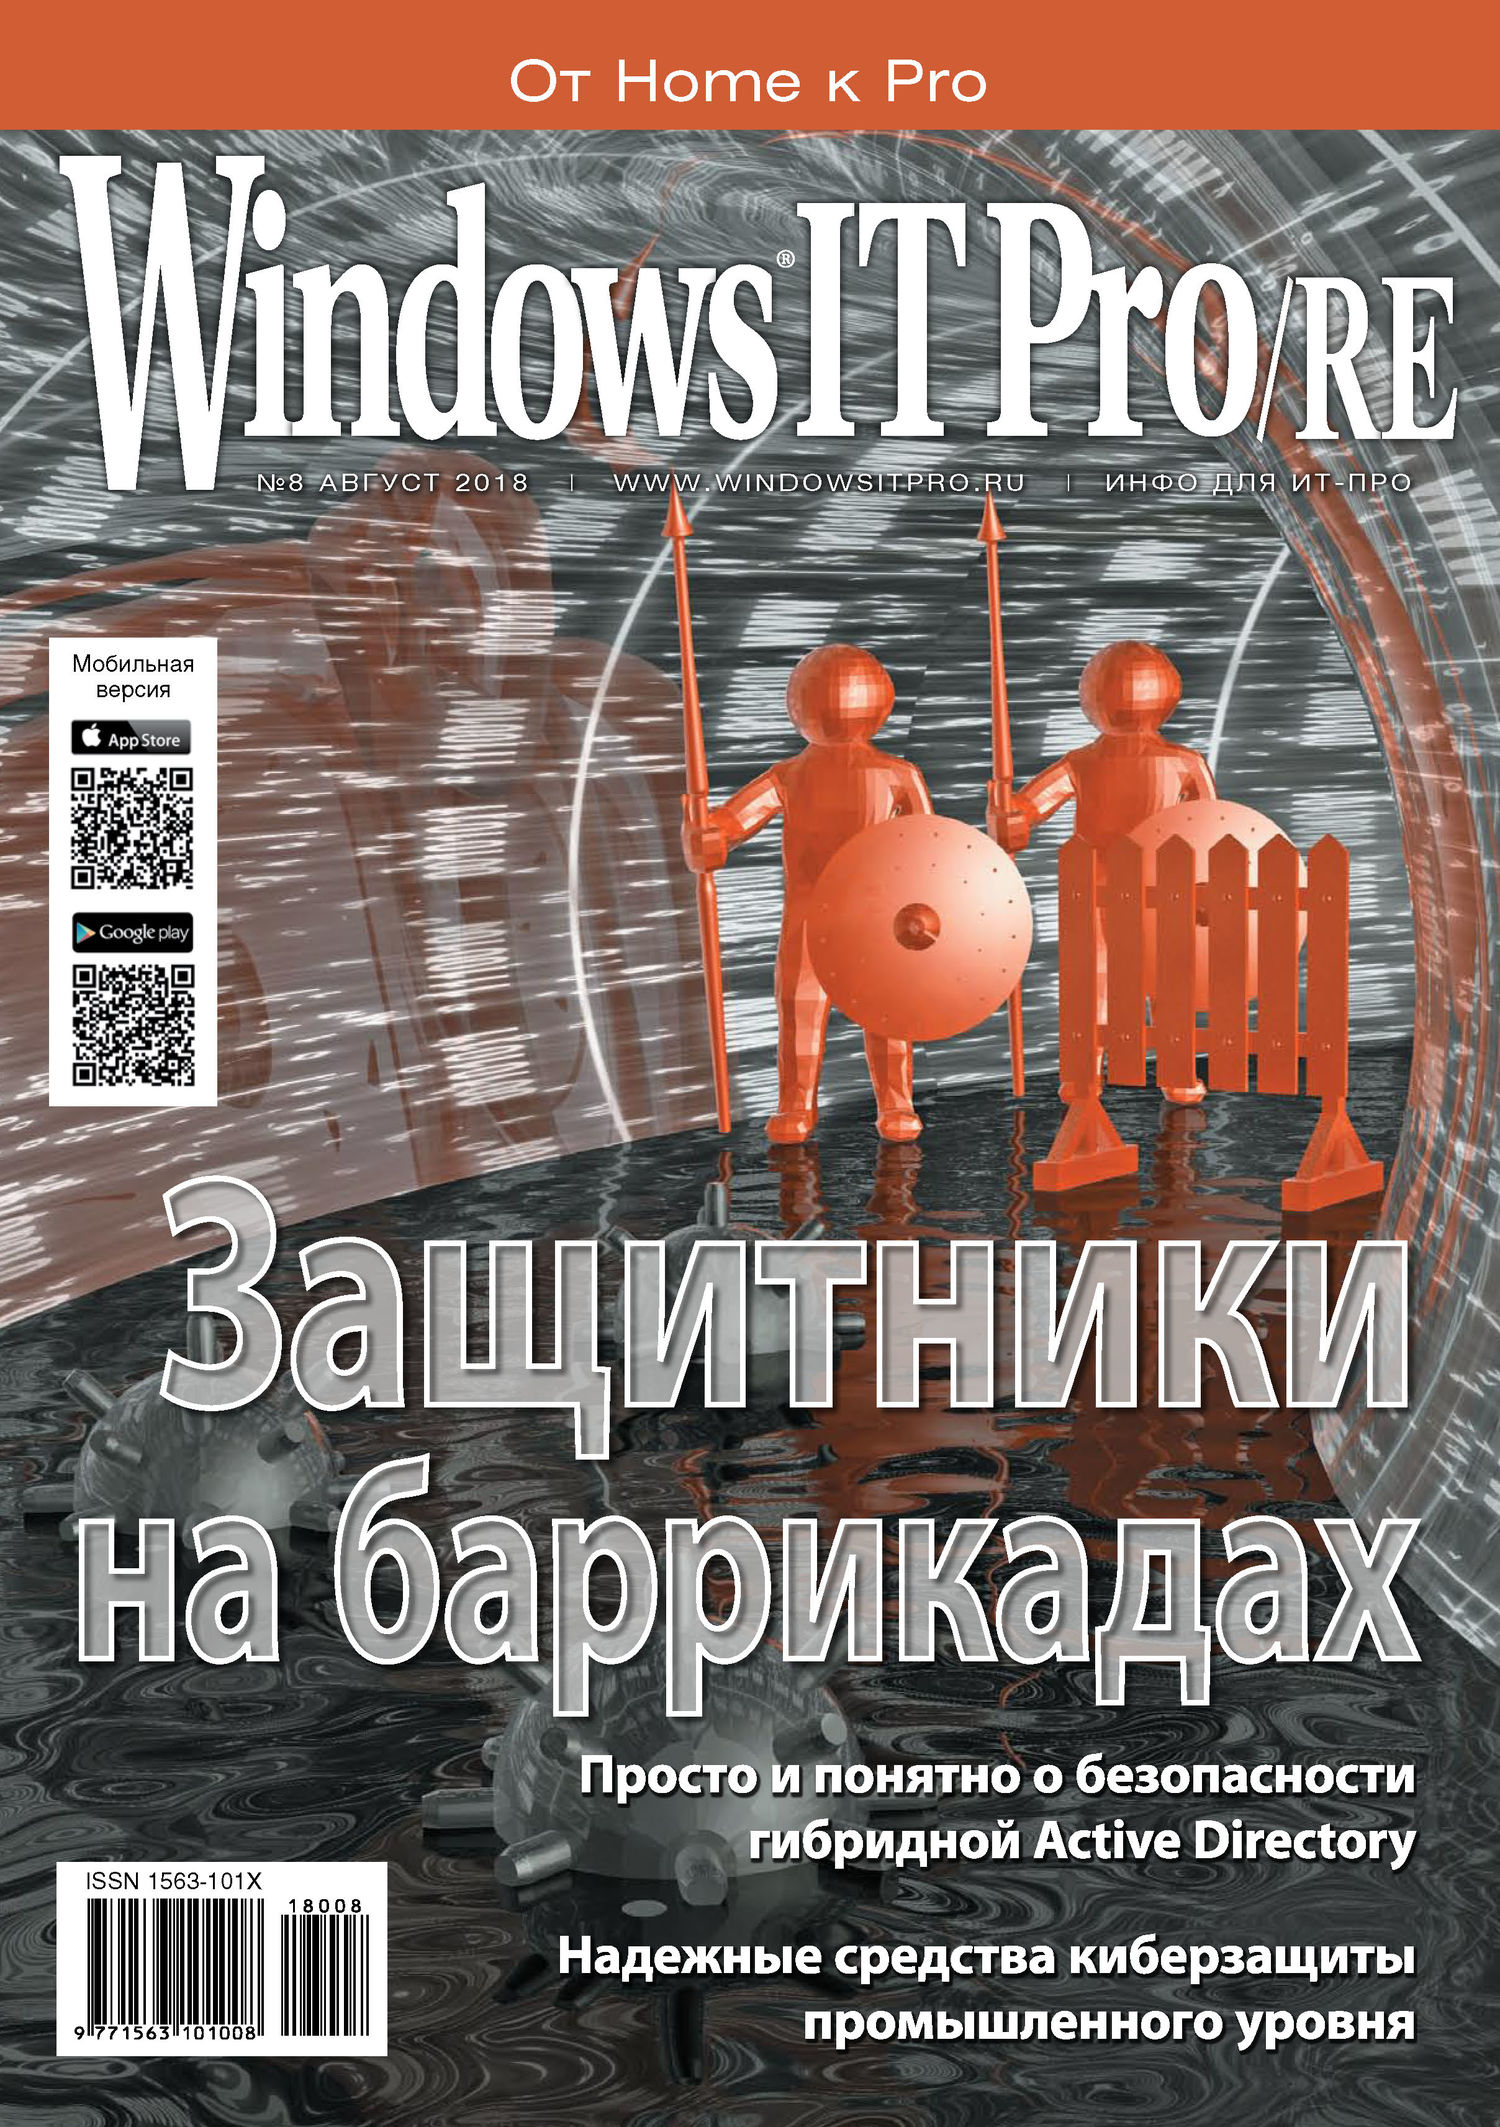 Windows IT Pro/RE №08/2018